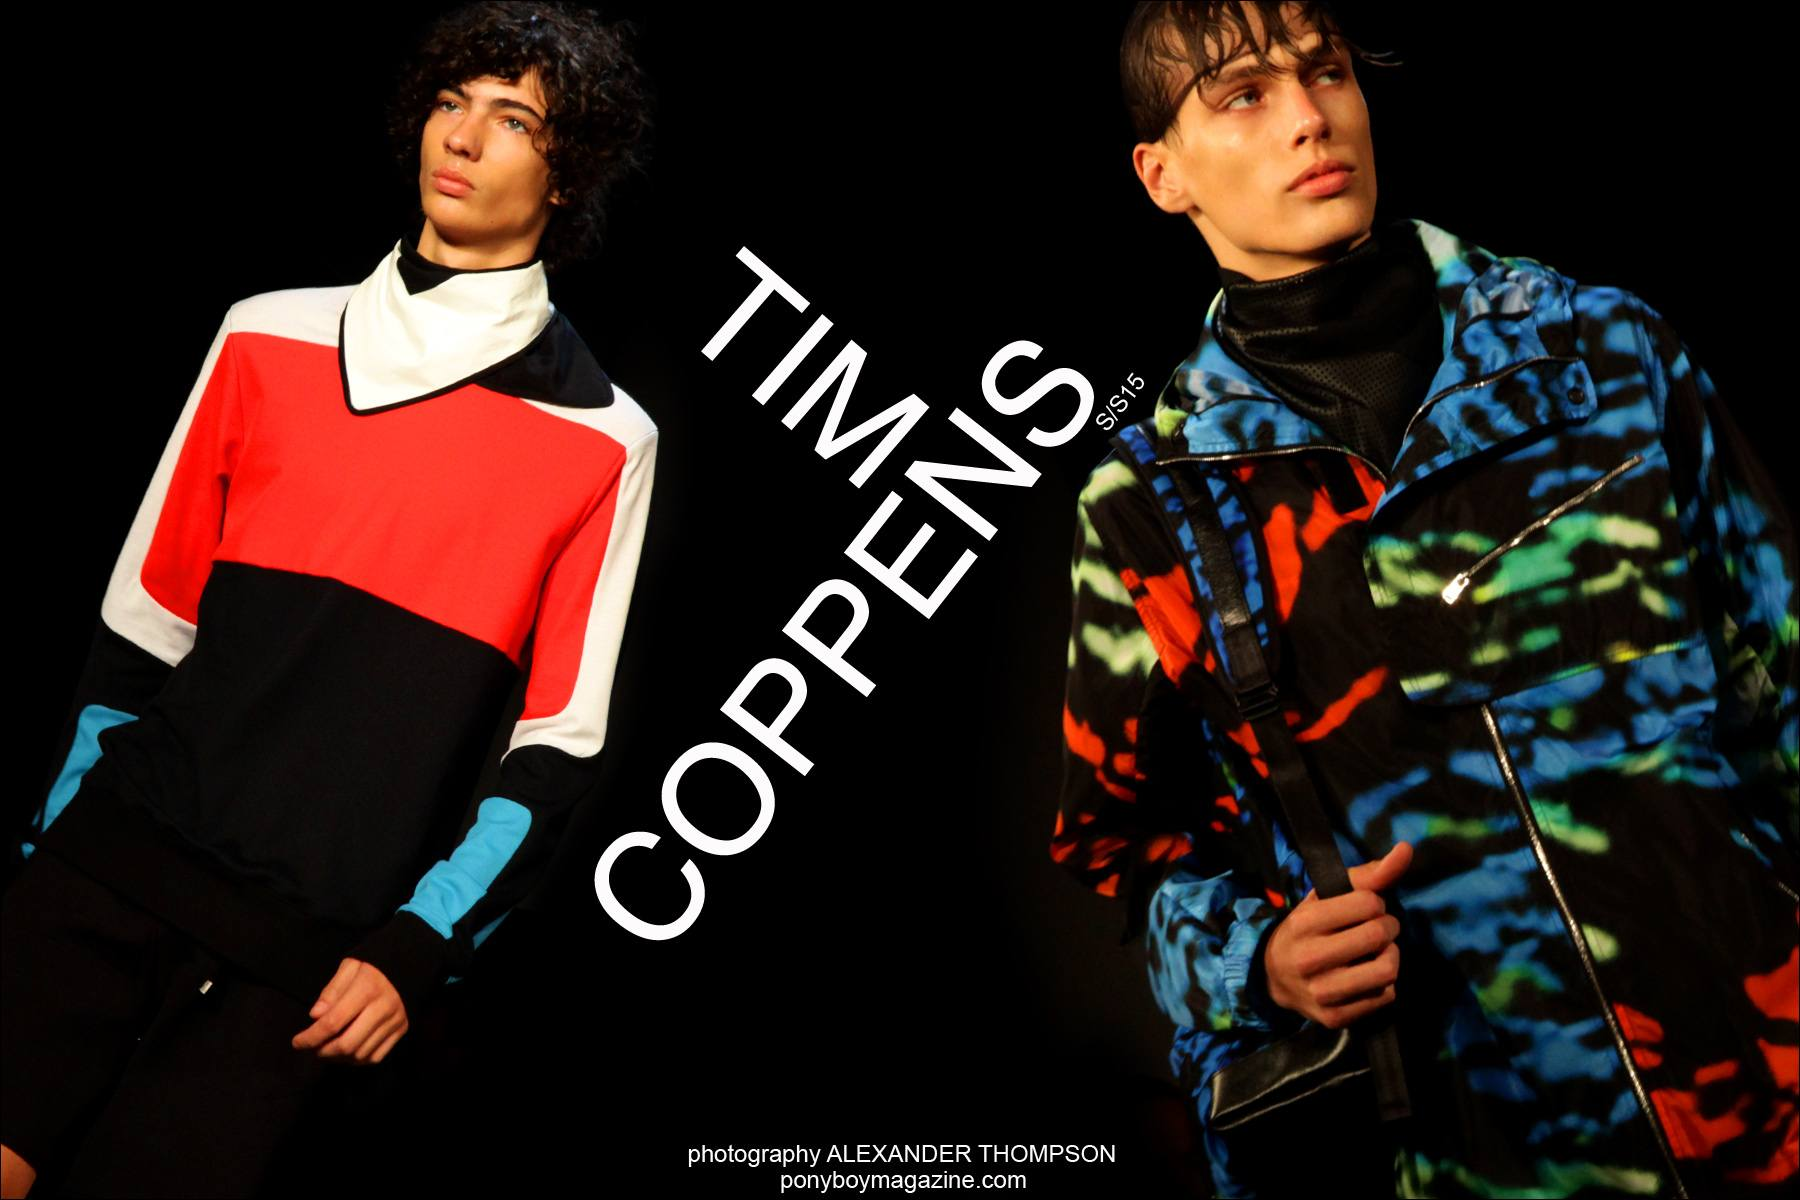 Models Piero Mendez and Marc Schulze walk in the Tim Coppens Spring/Summer 2015 collection shown at Milk Studios in New York City. Photographs by Alexander Thompson for Ponyboy Magazine.